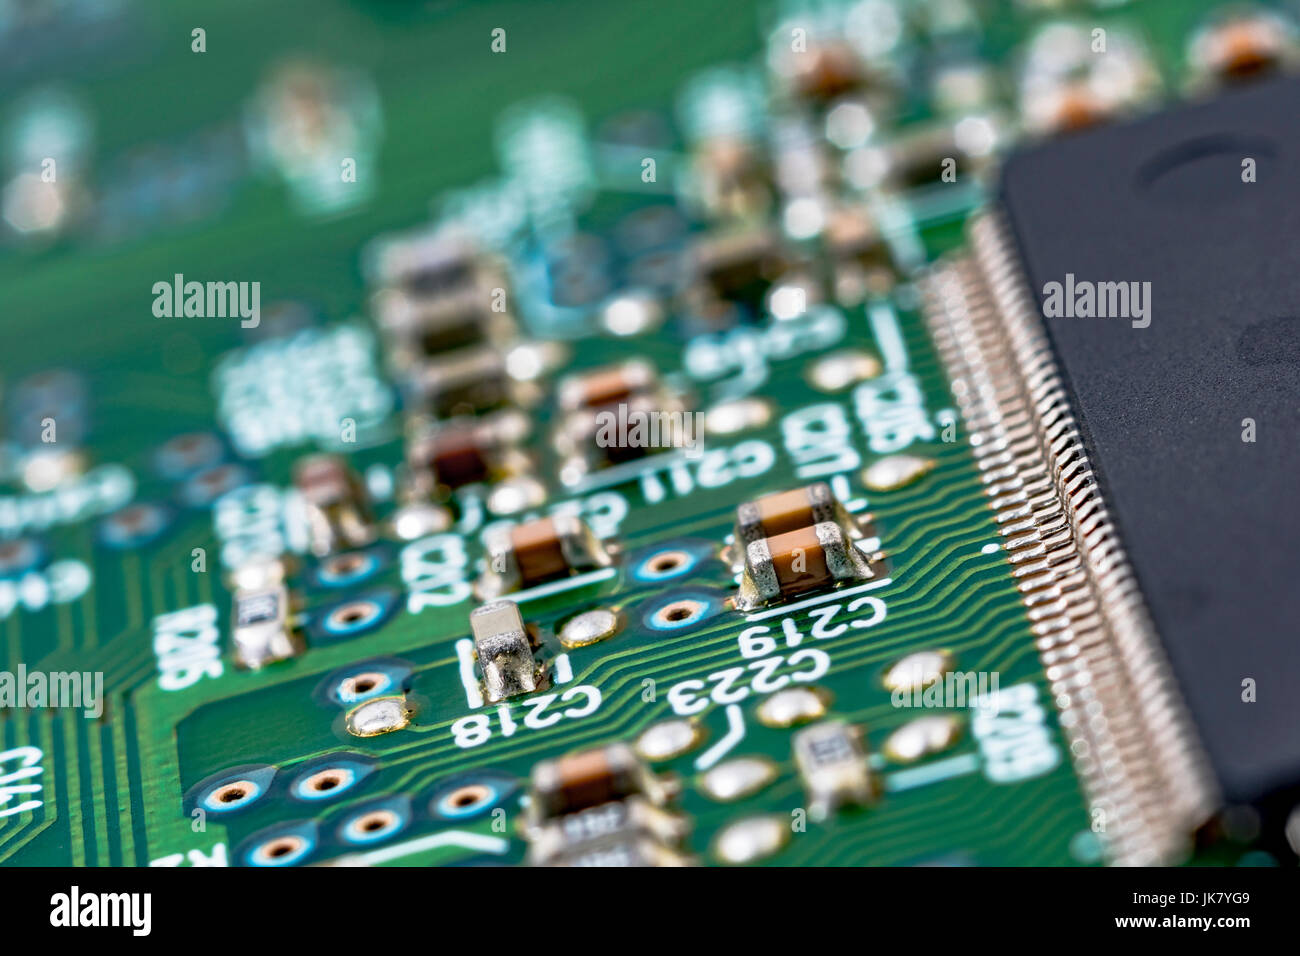 circuitboard stock photos \u0026 circuitboard stock images alamysurface mount technology (smt) components on a green printed circuitboard wiring inside computer